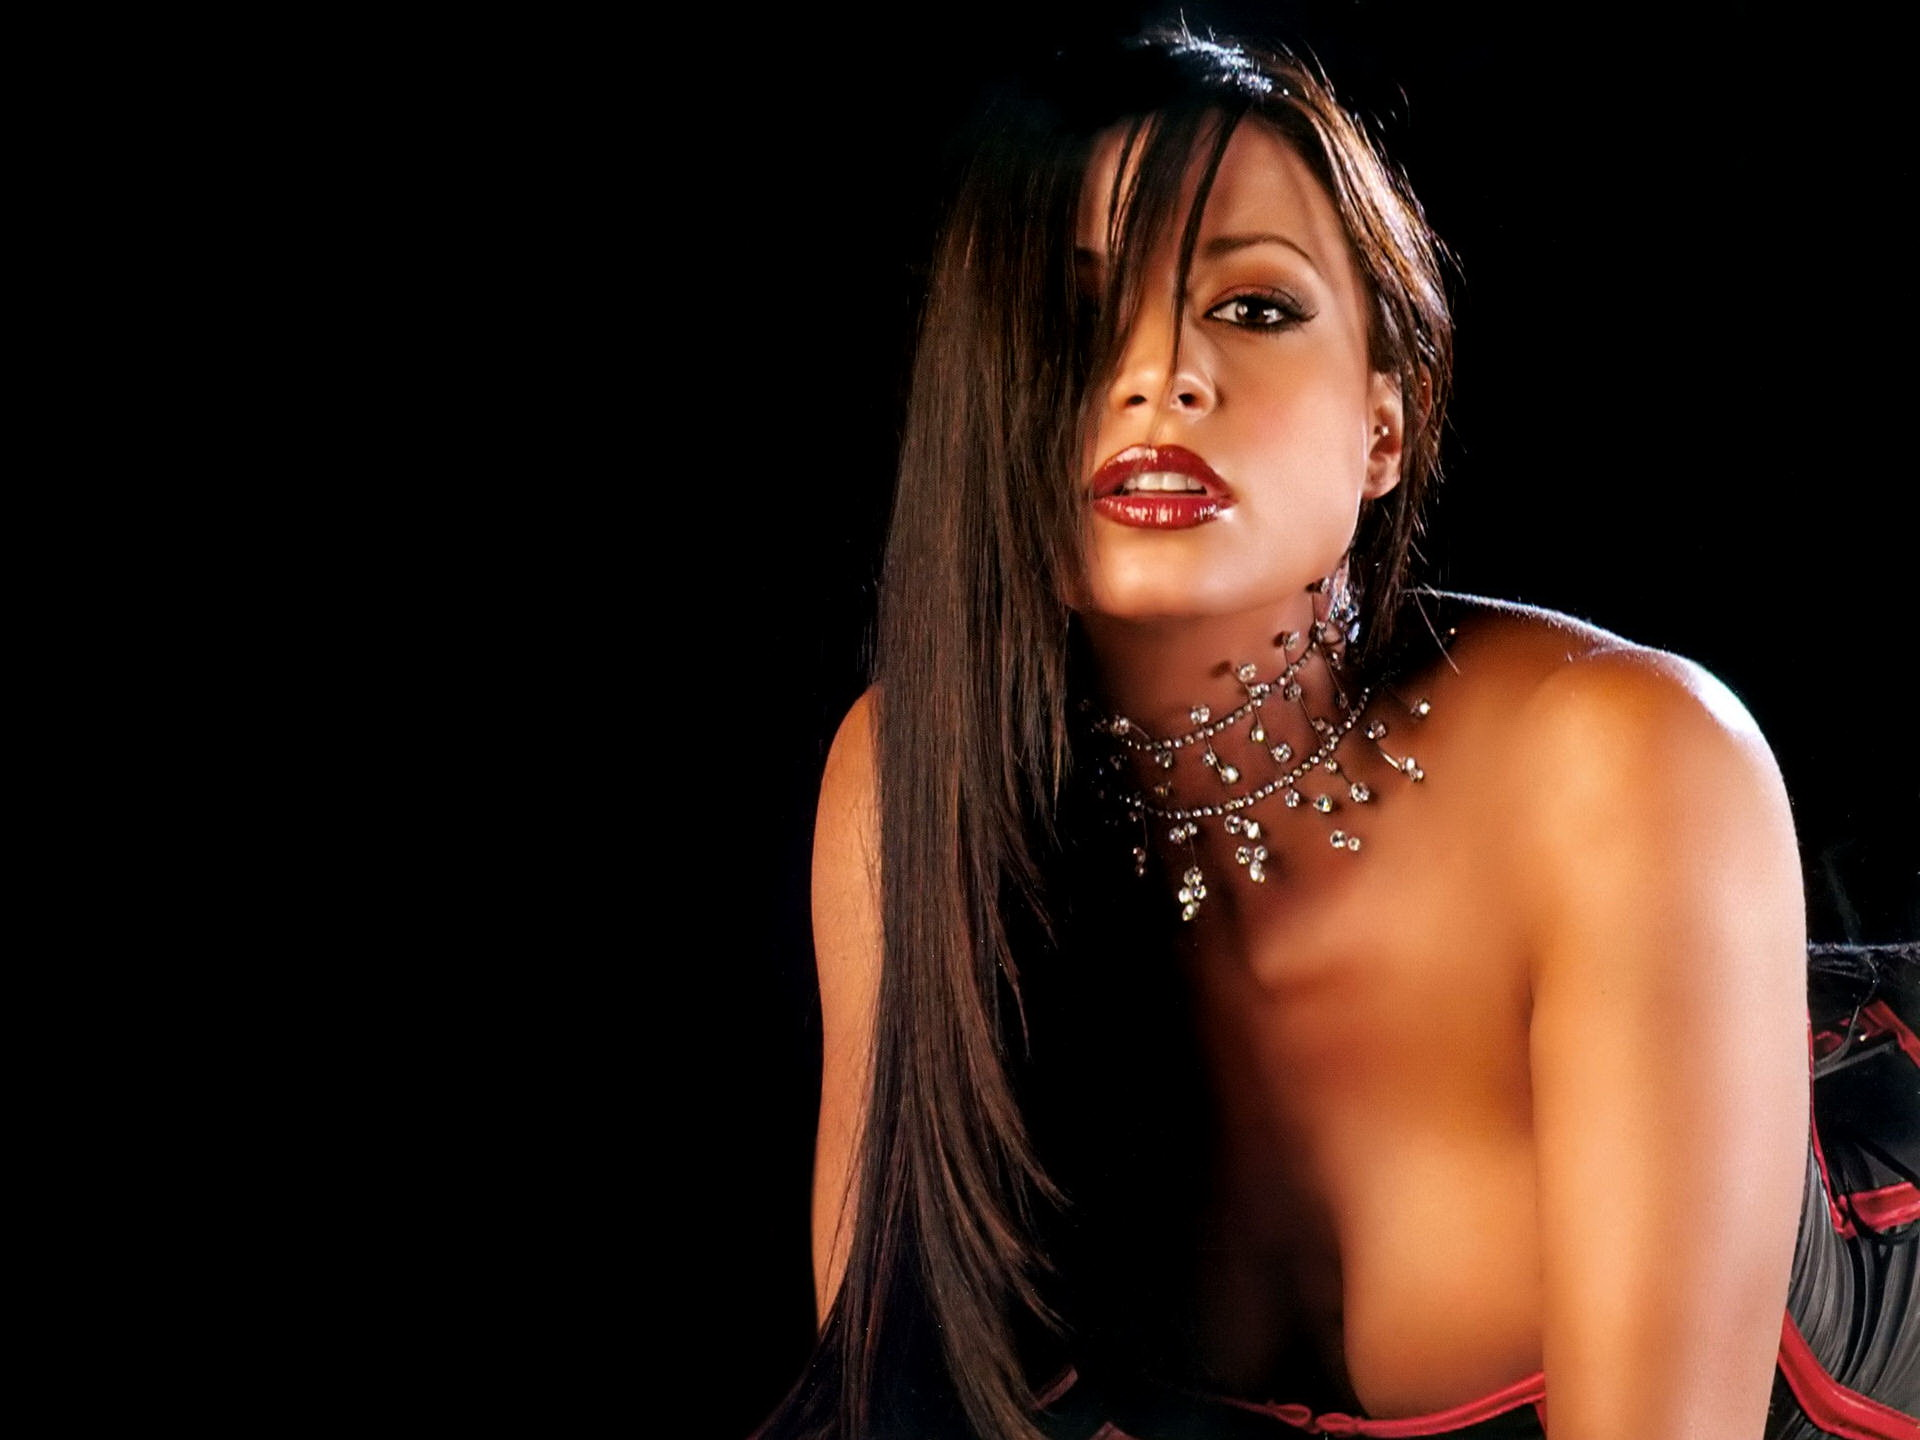 candice michelle nude playboy pictures  94222